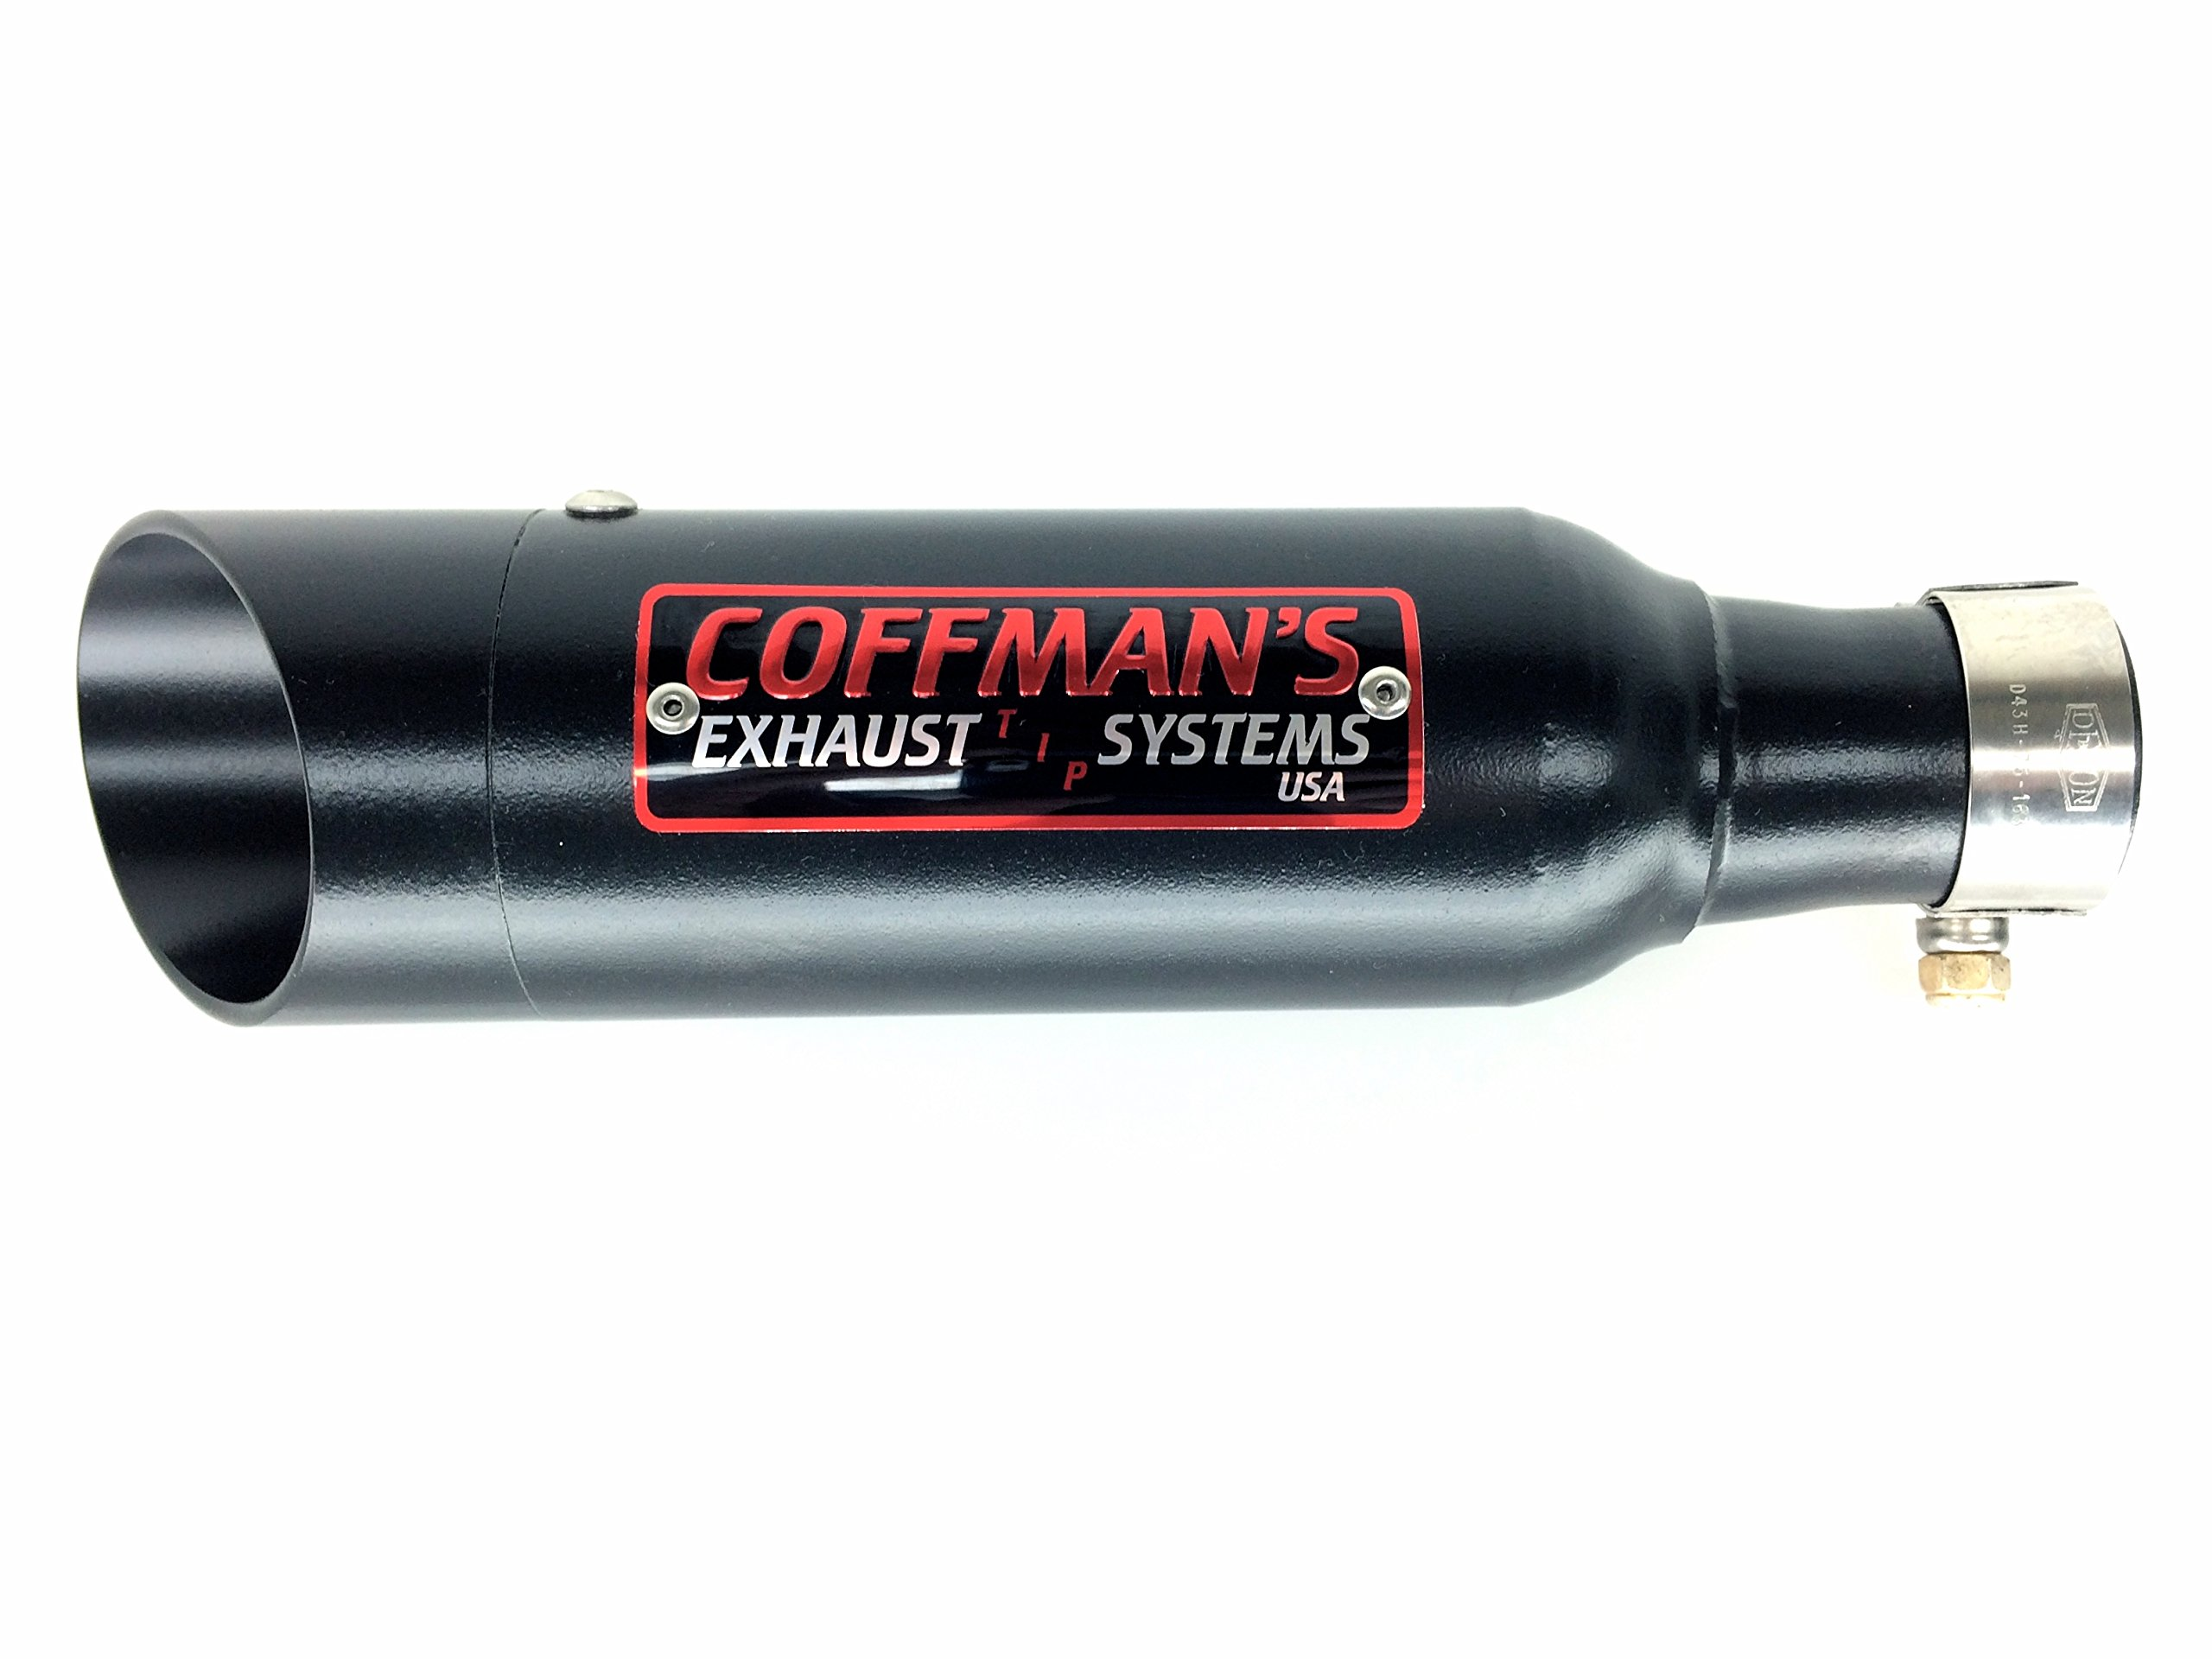 Coffman's Shorty Exhaust for Yamaha R6 (1999-02) Sportbike with Black Tip